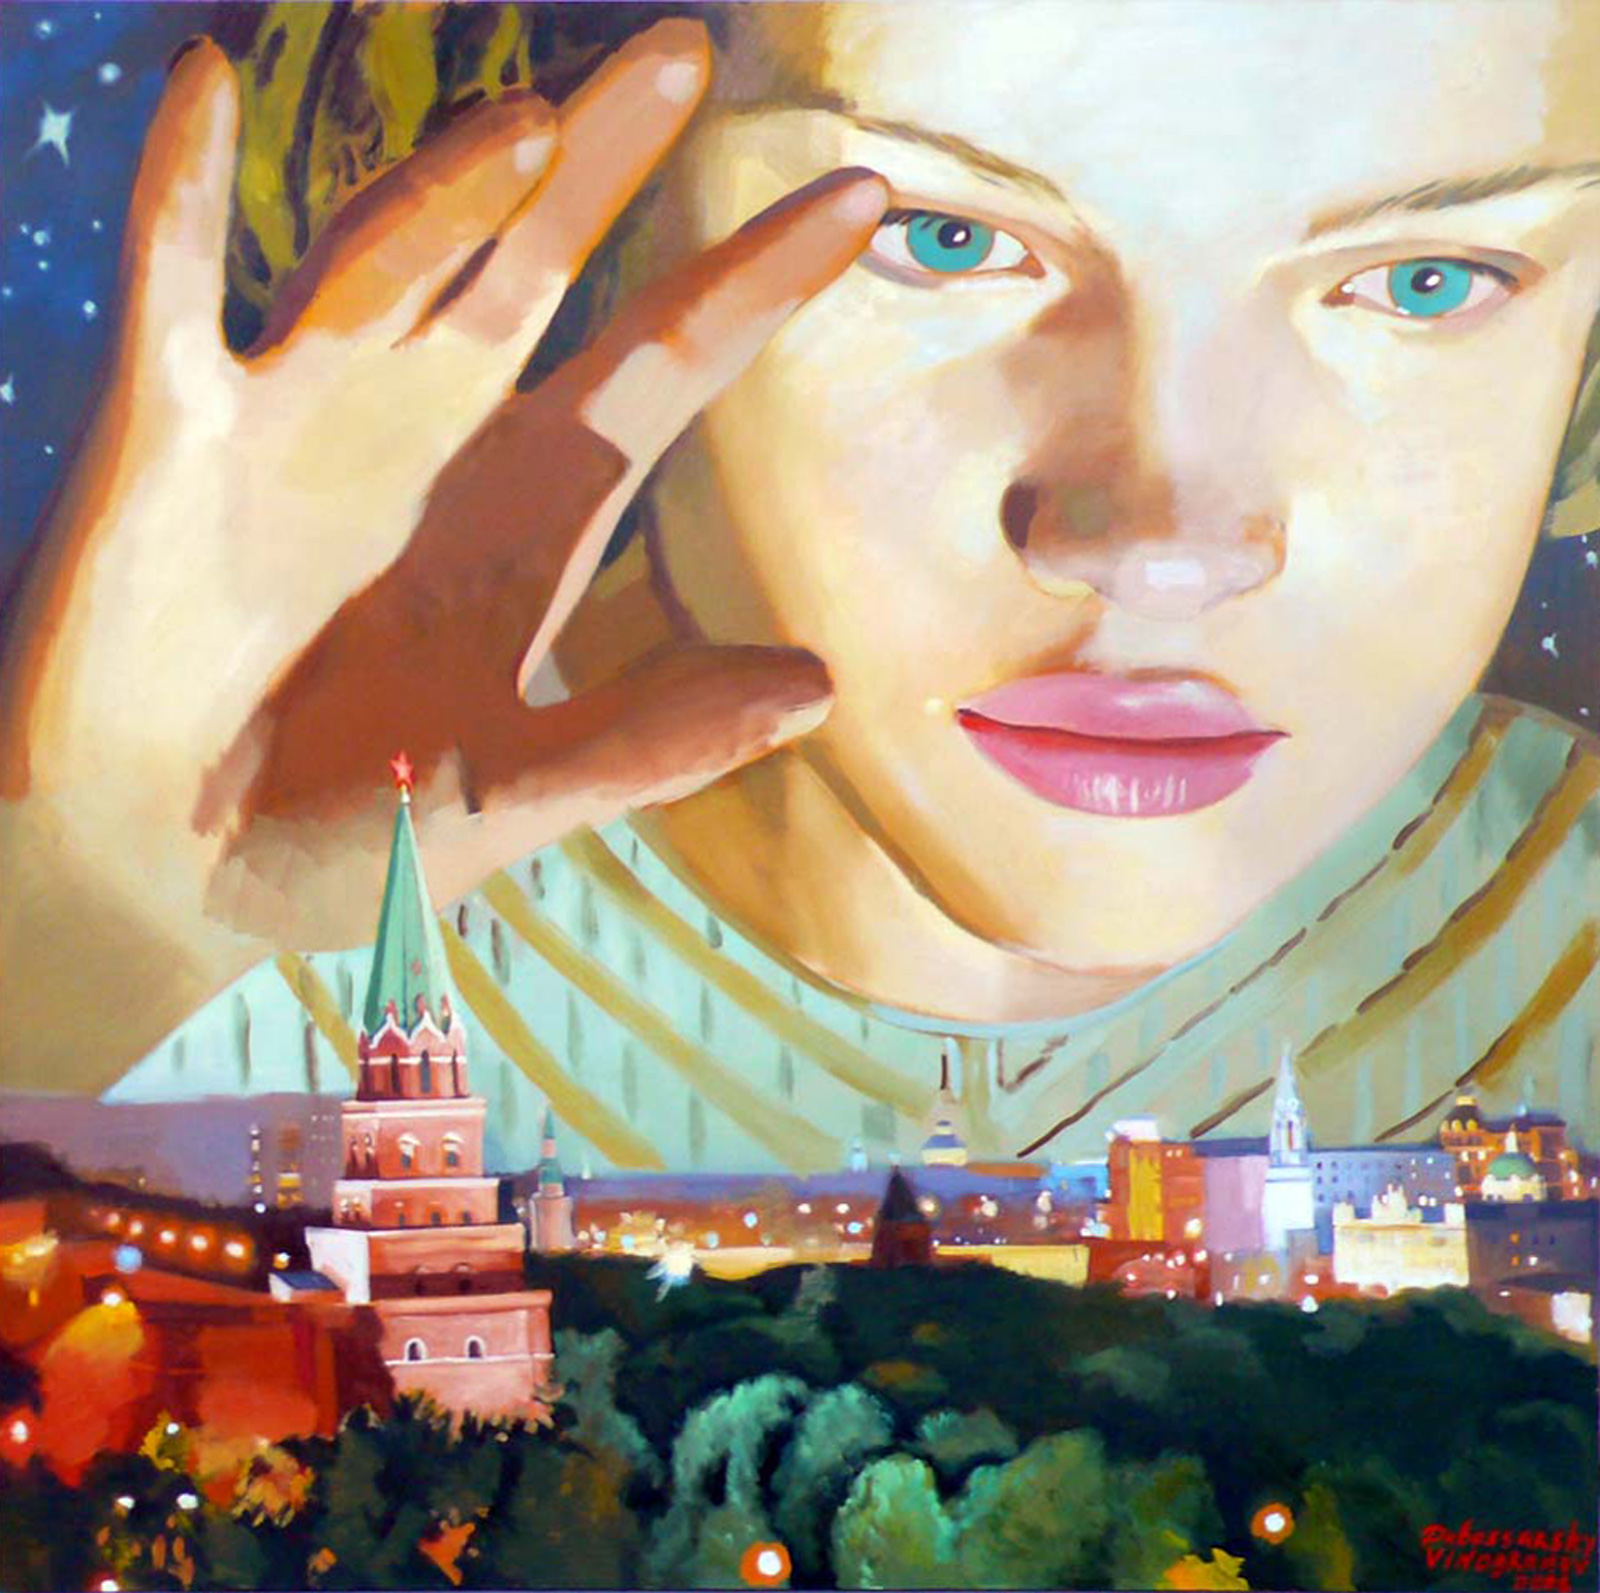 Dubossarsky & Vinogradov Above the Kremlin, 2008 oil on canvas, 195 x 195 cm 77 x 77 ins. Vladimir Dubossarsky and Alexander Vinogradov